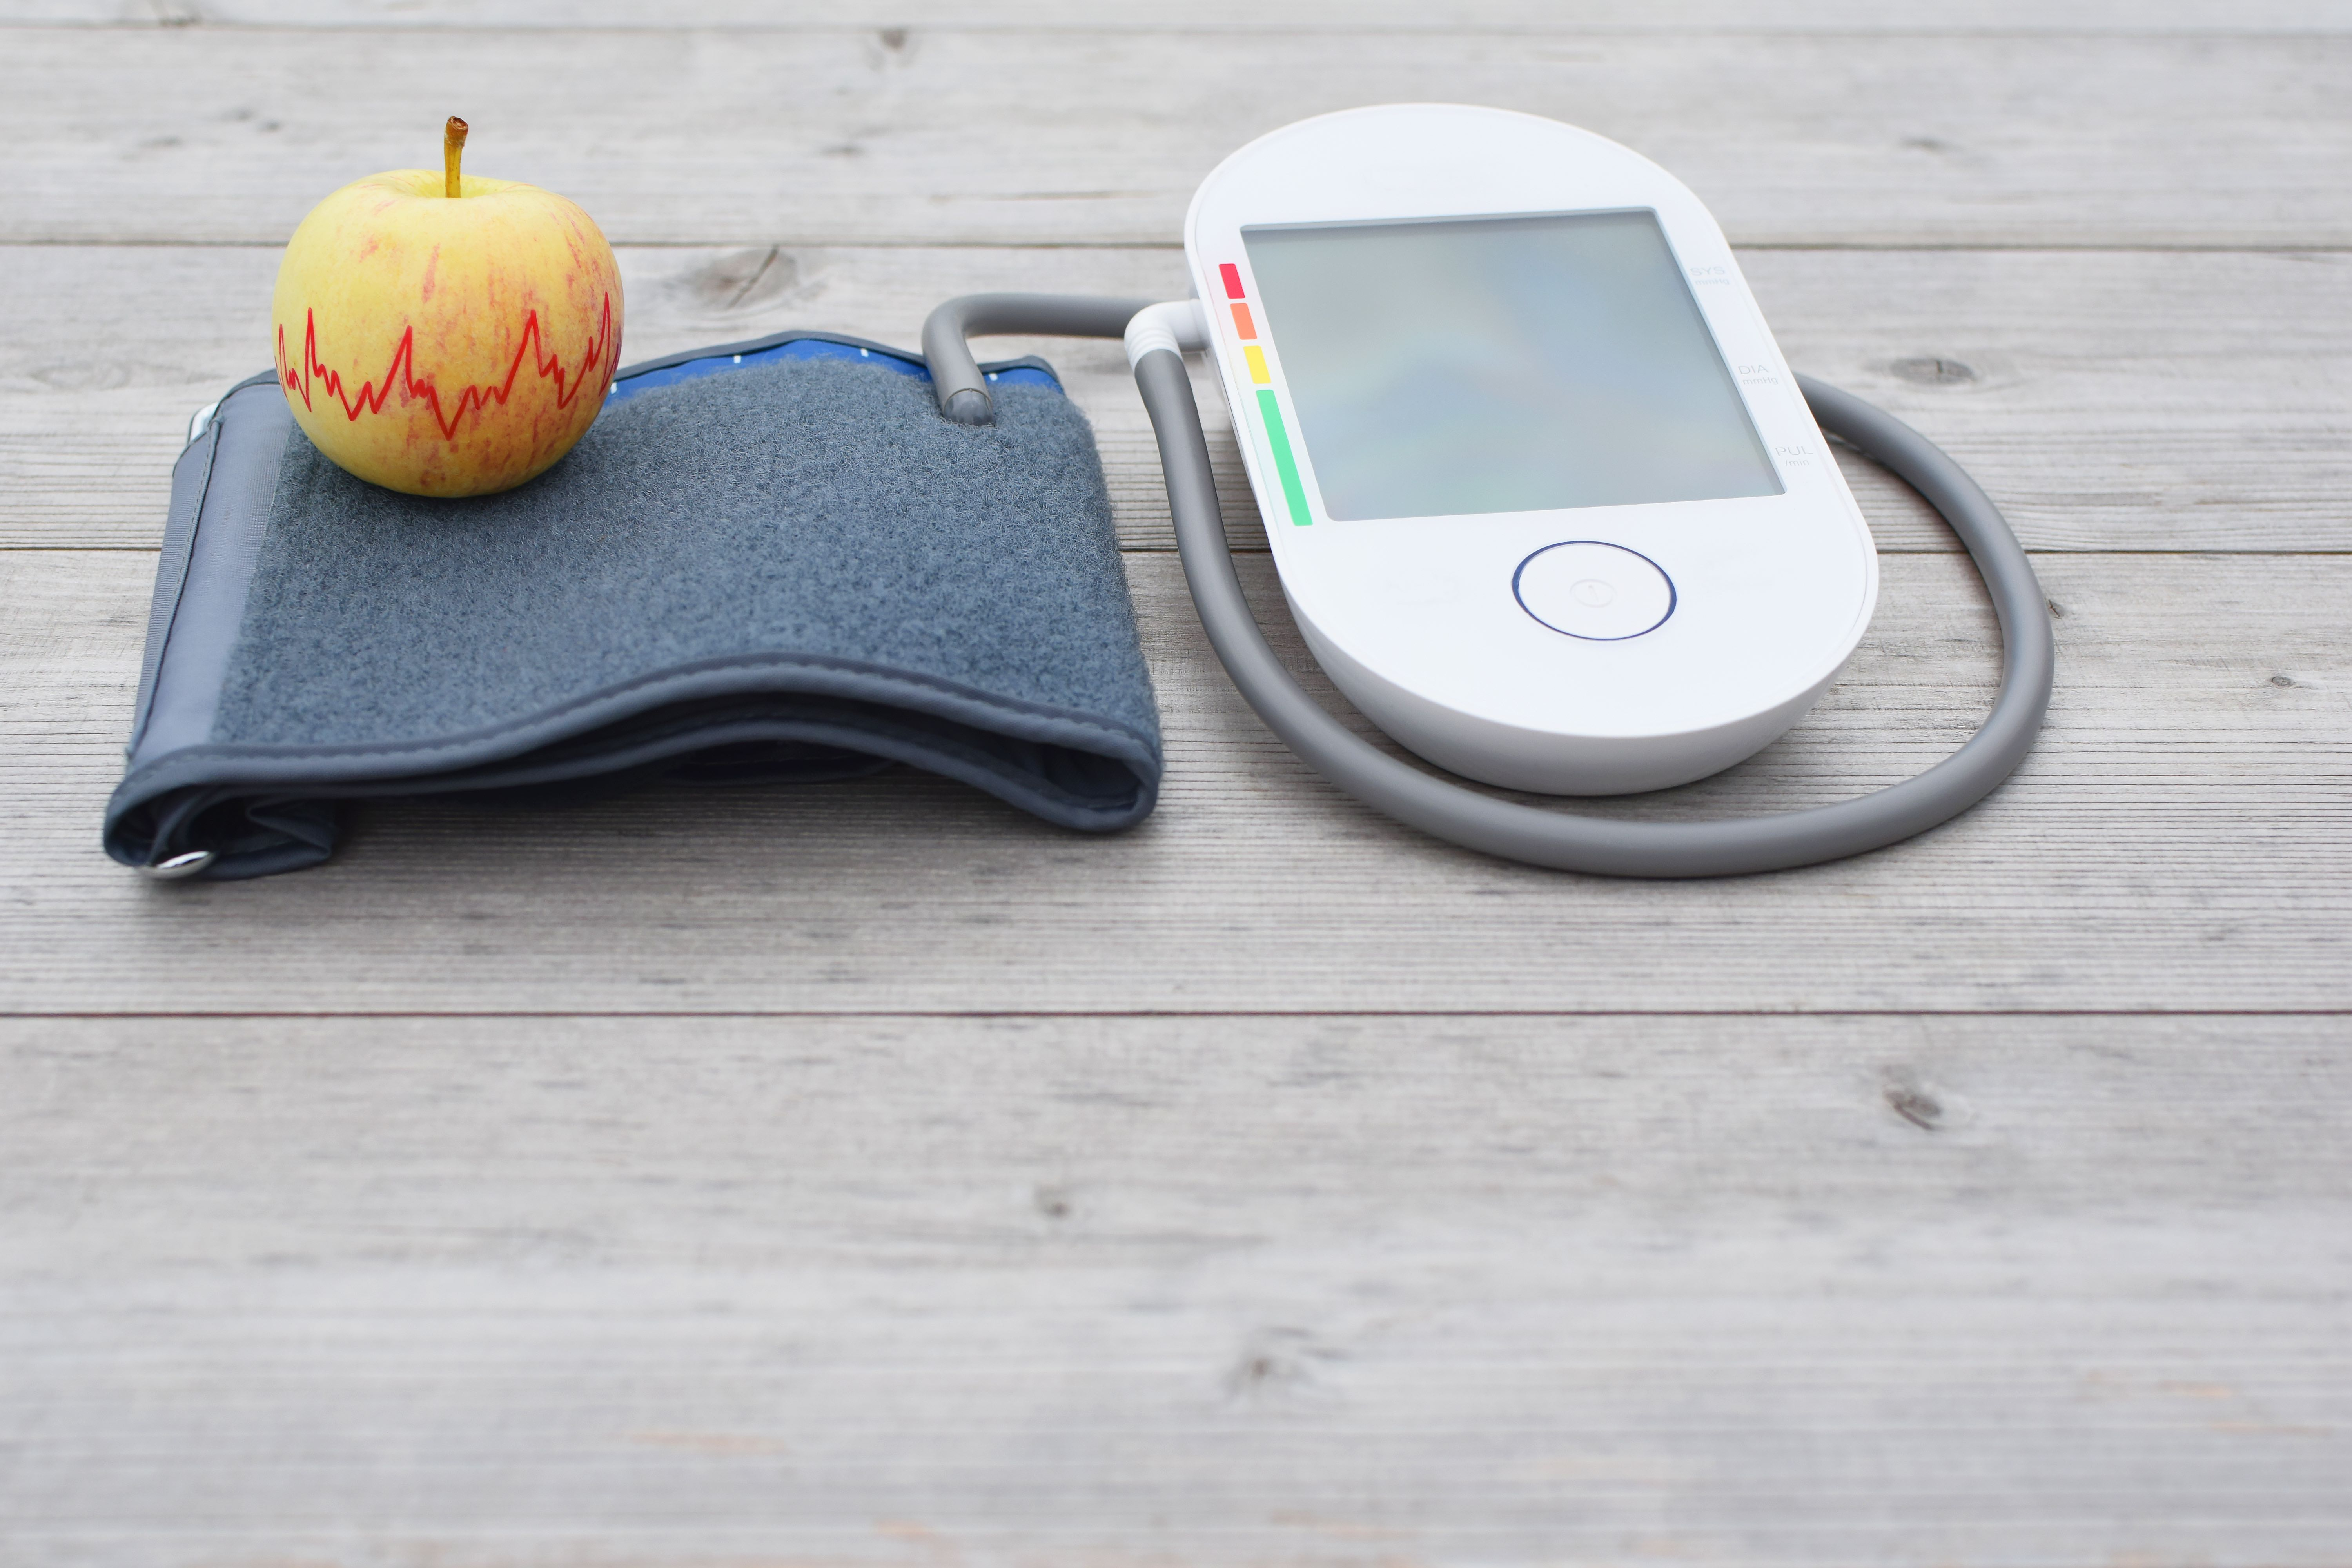 A home blood pressure monitoring device can help you keep tabs on your blood pressure.(ingae/Shutterstock)